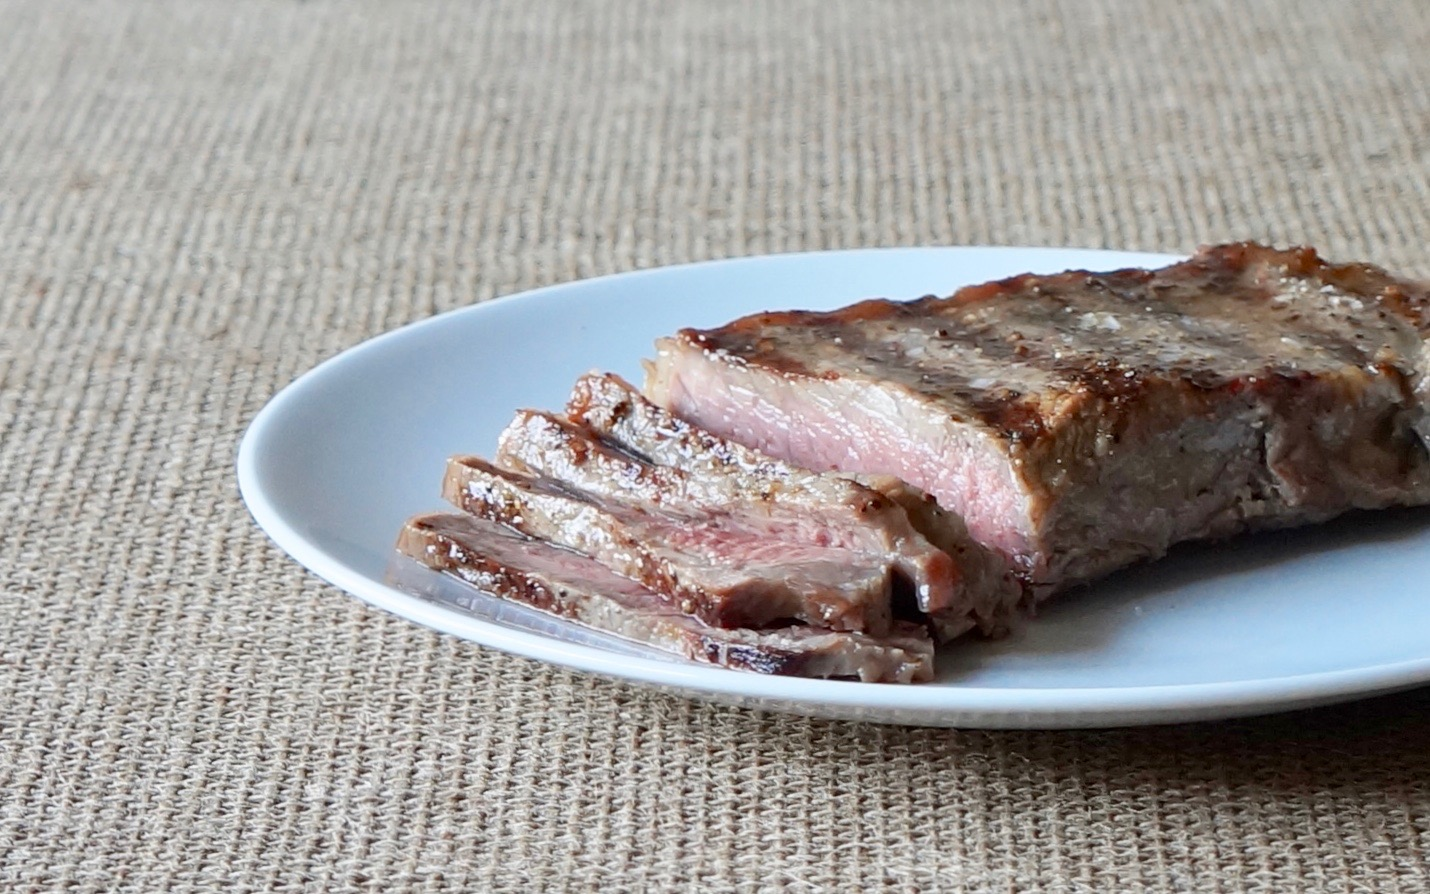 How-To-Make-Pan-Seared-New-York-Strip-Steaks-Rebecca-Gordon-Publisher-Buttermilk-Lipstick-Culinary-Entertaining-Techniques-RebeccaGordon-Southern-Hostess-Pastry-Chef-Birmingham-Alabama